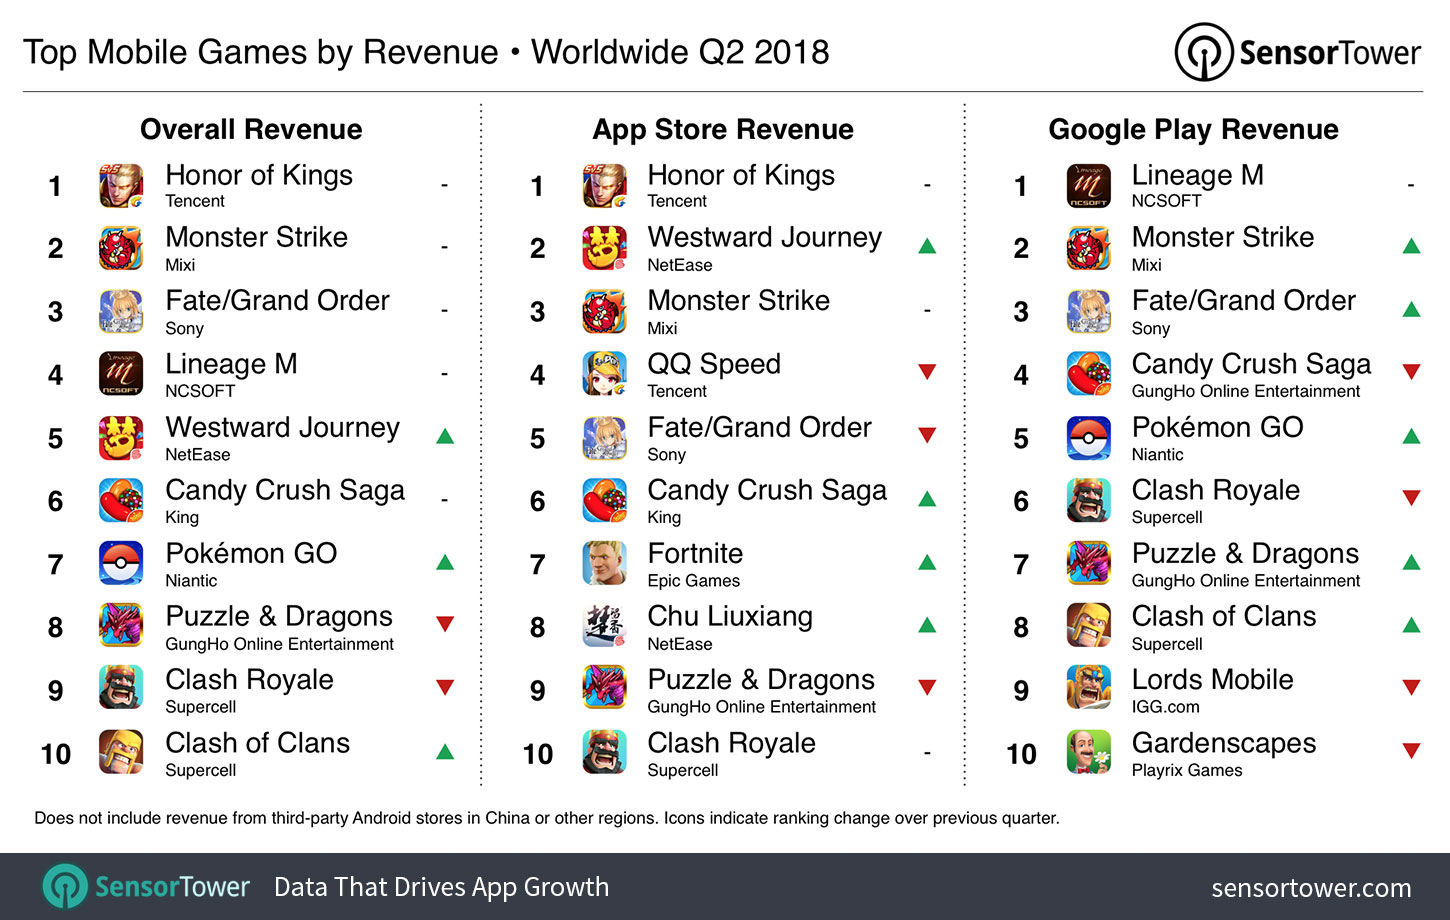 Chart showing the world's highest grossing iOS and Google Play games for Q2 2018